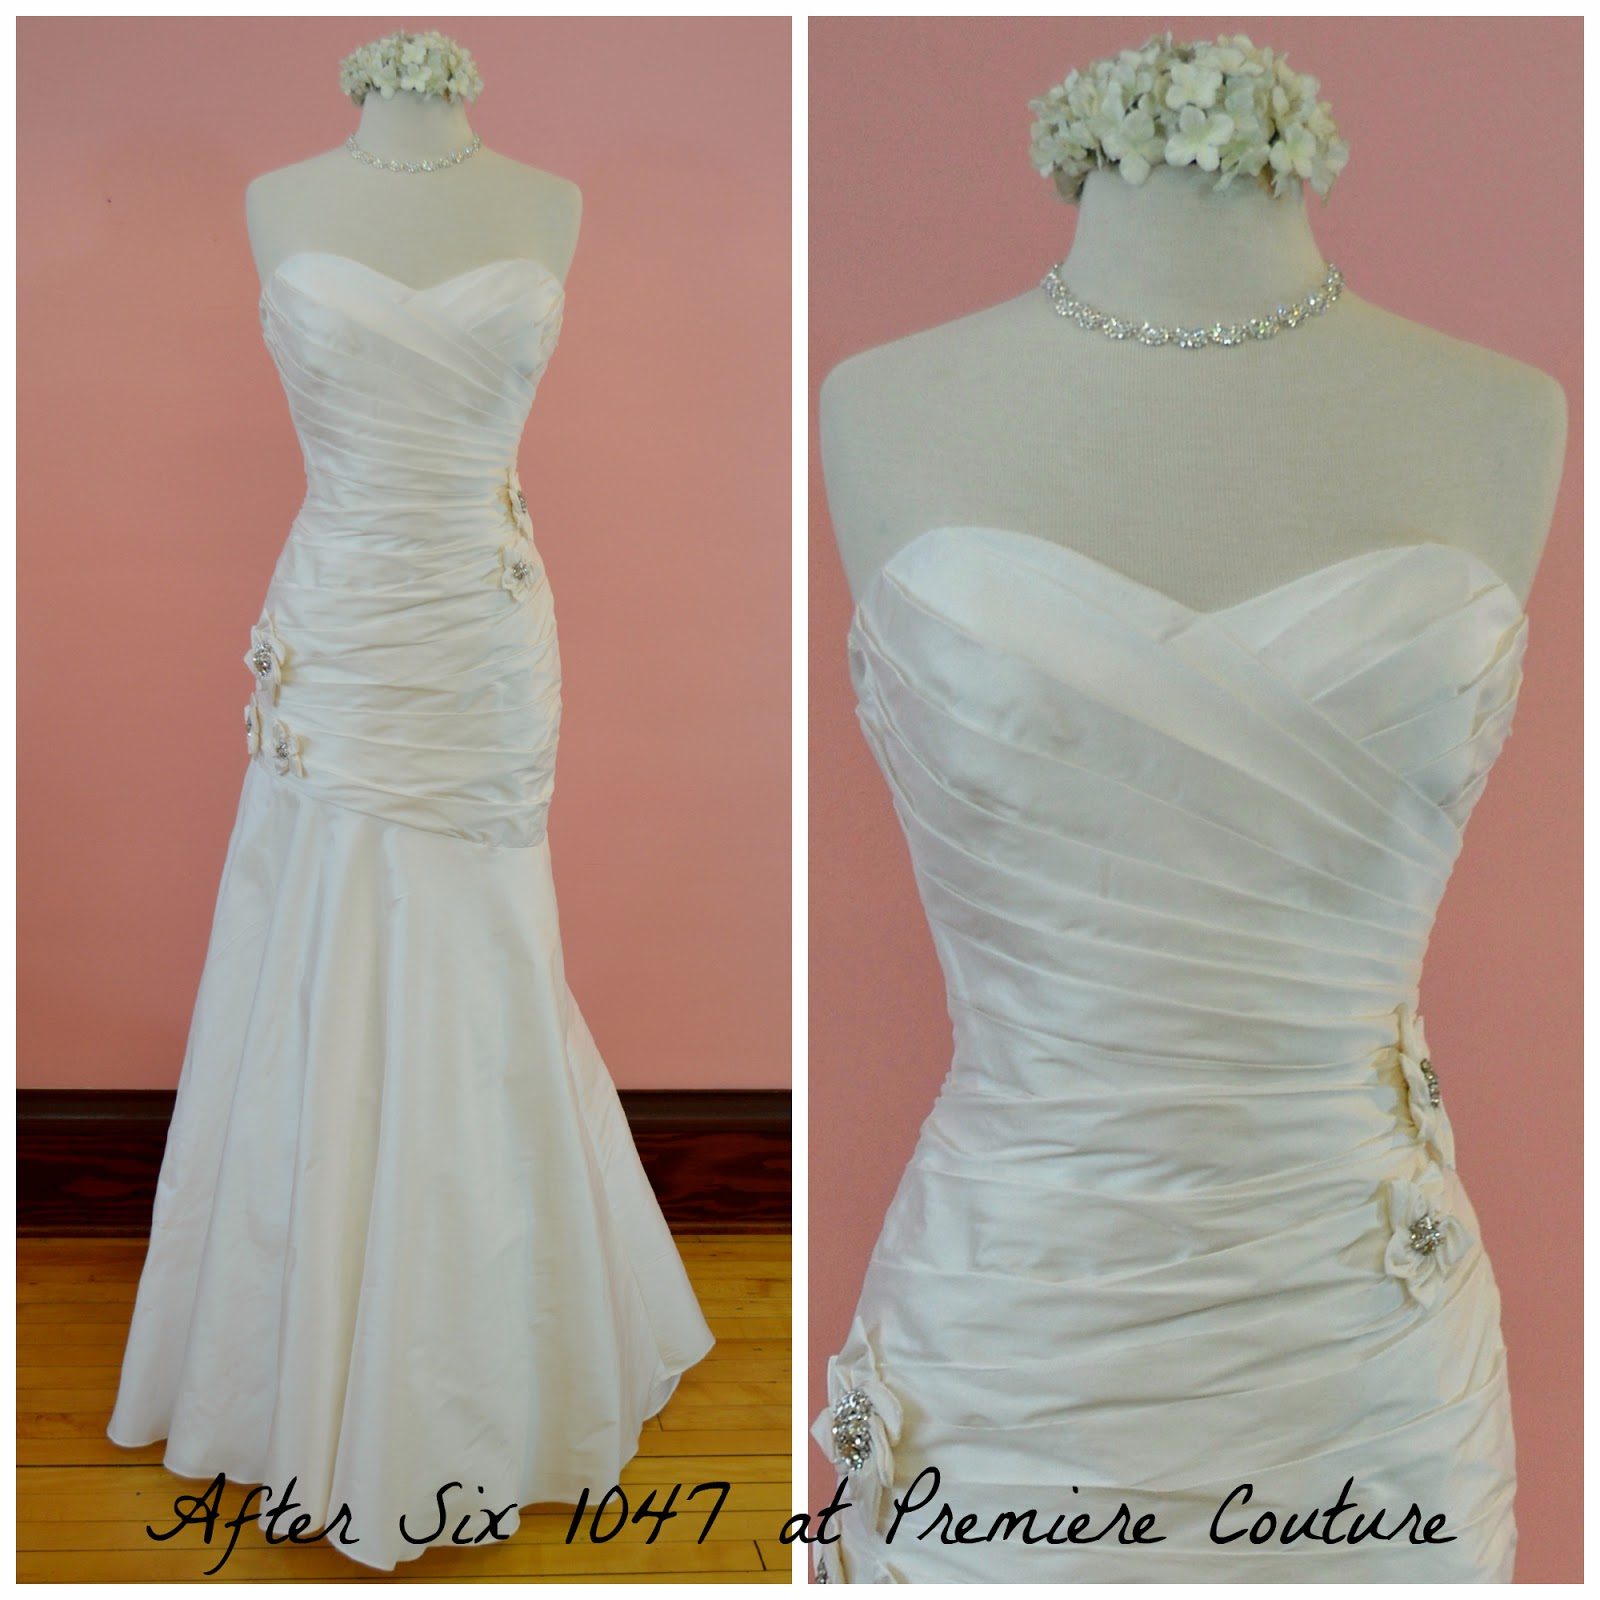 After Six Wedding Gowns 17 Cute Our New Bridal Gowns